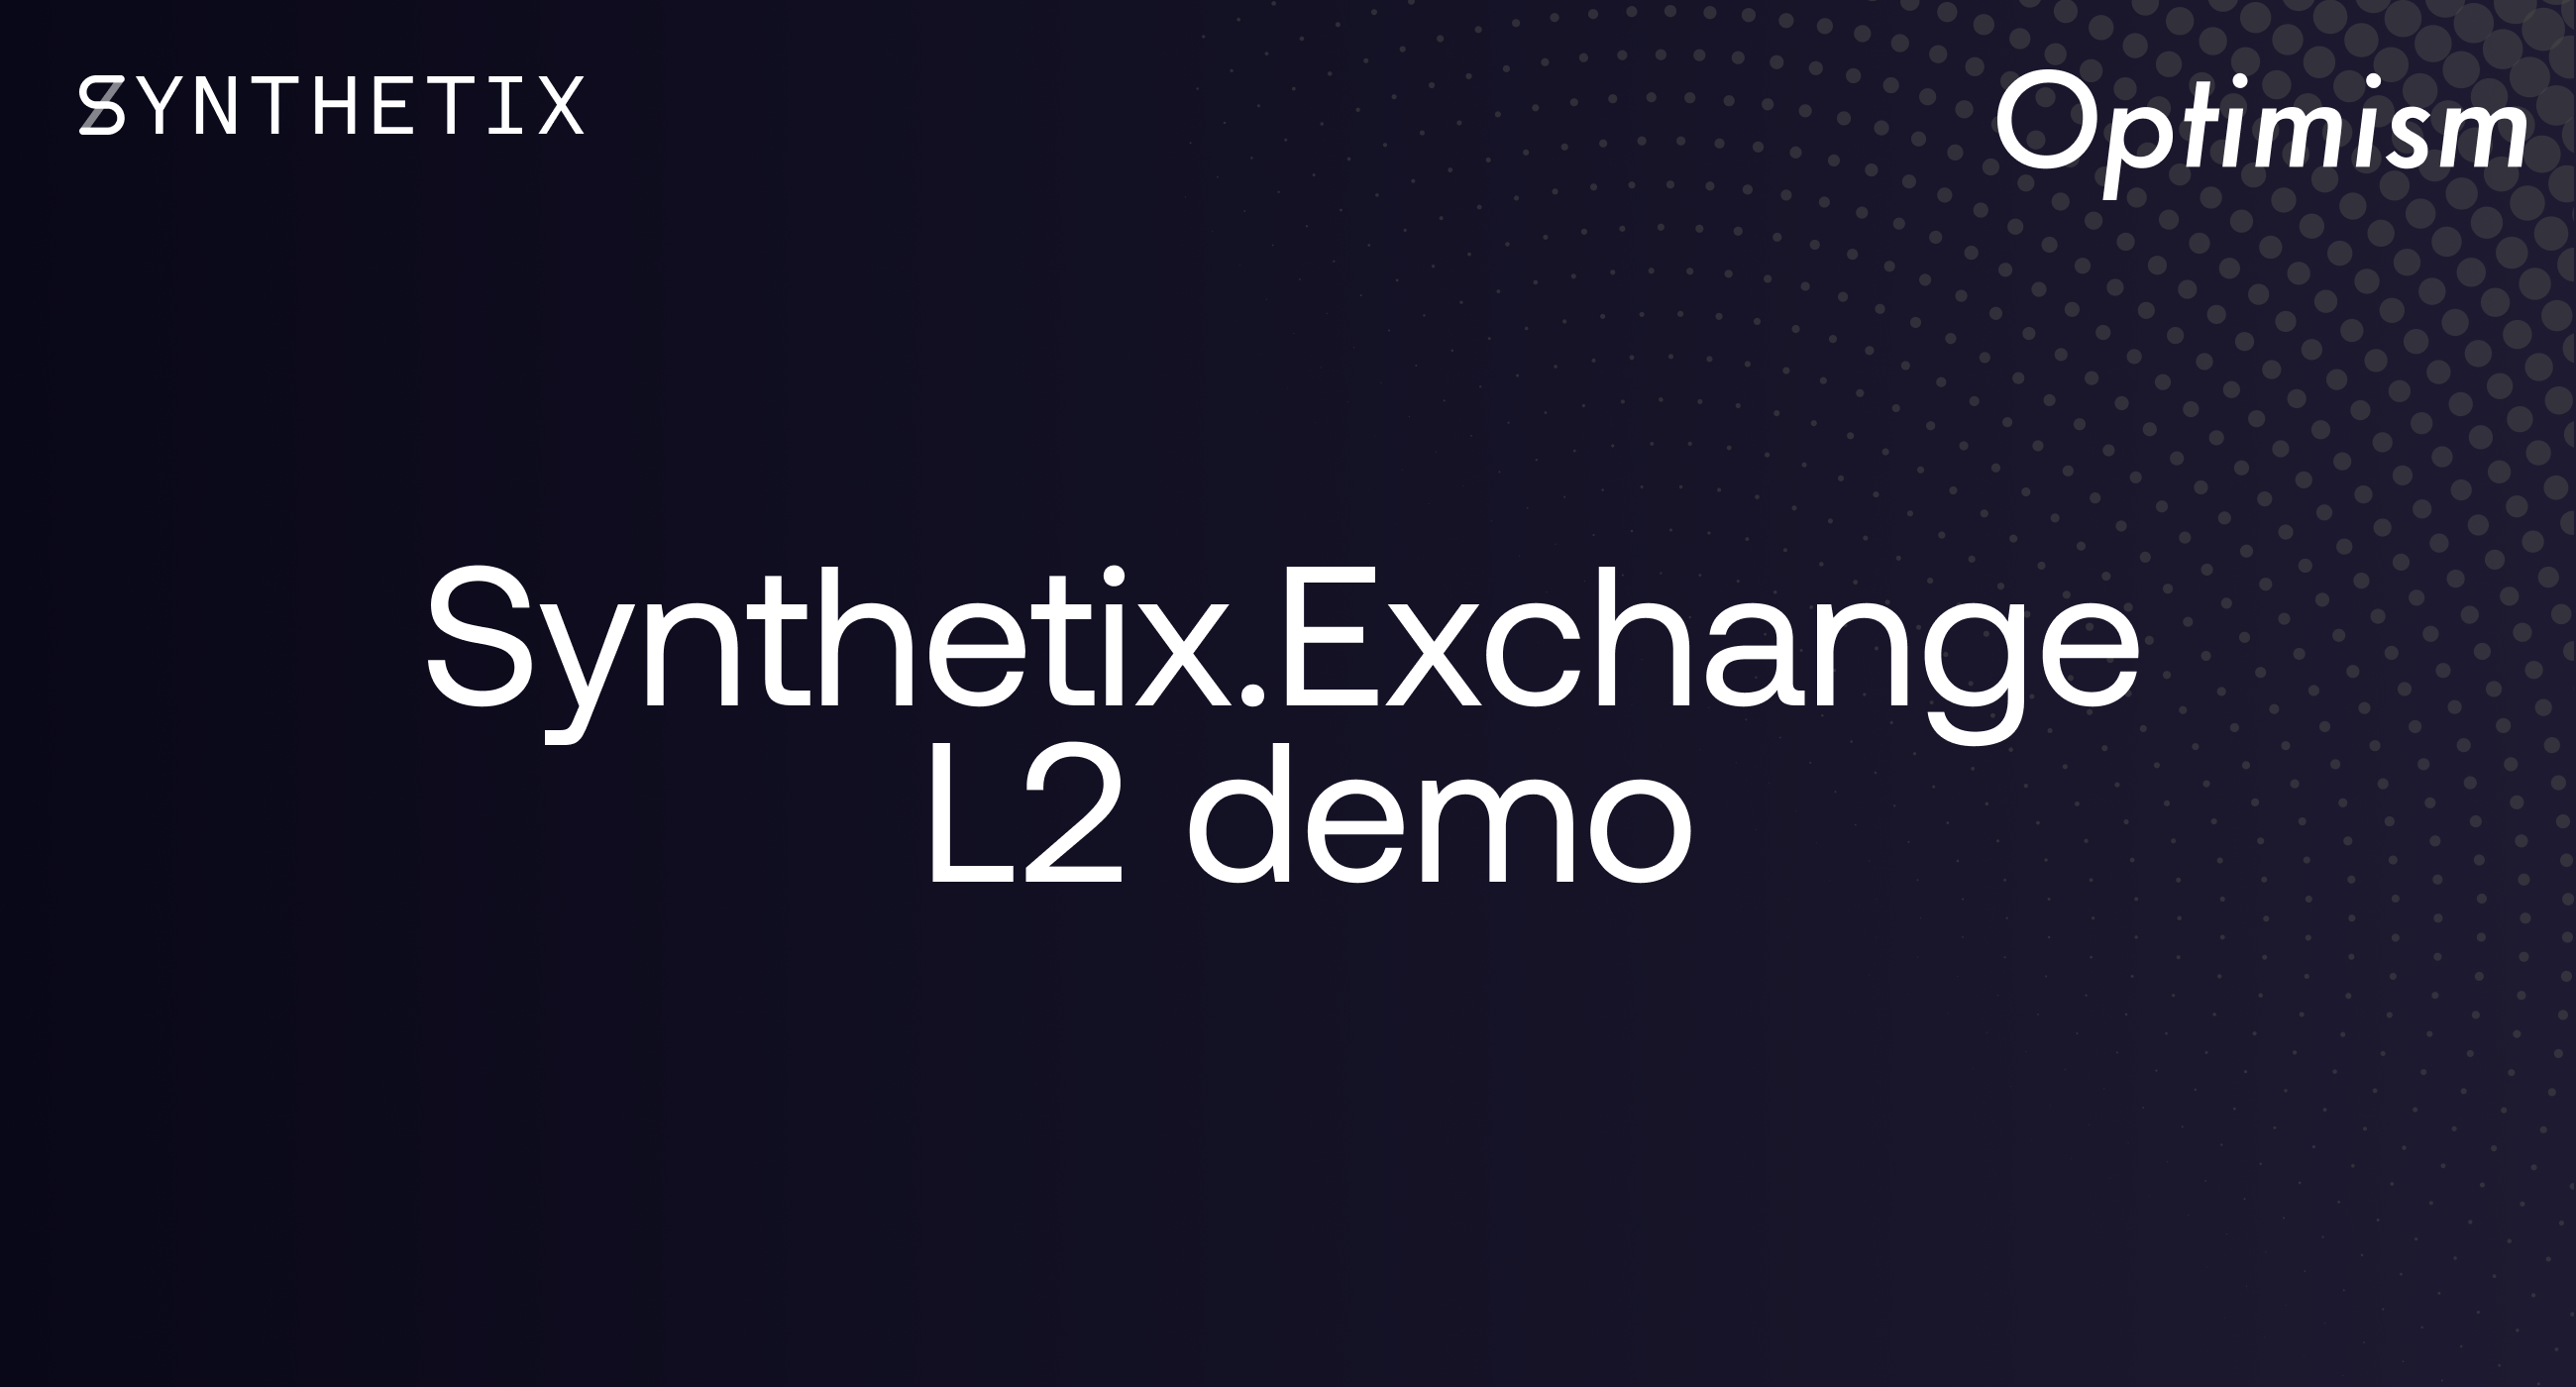 The Synthetix.Exchange L2 demo is now live on OVM!